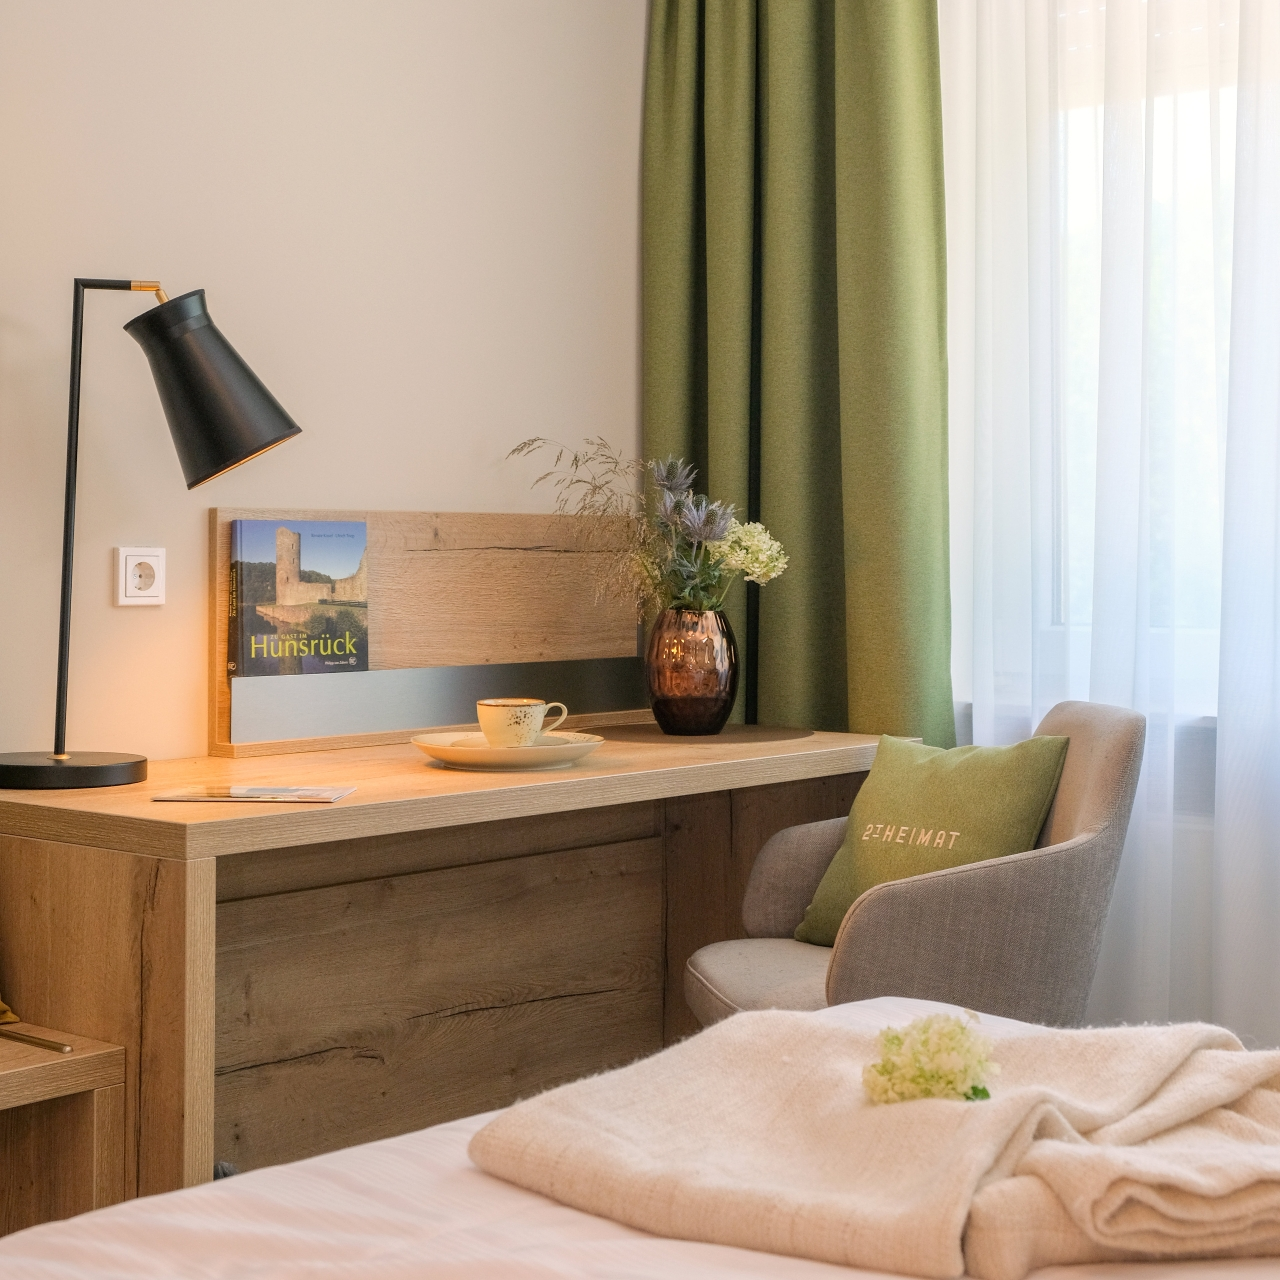 Hotel 2theimat 3 Hrs Star Hotel In Morbach Rhineland Palatinate